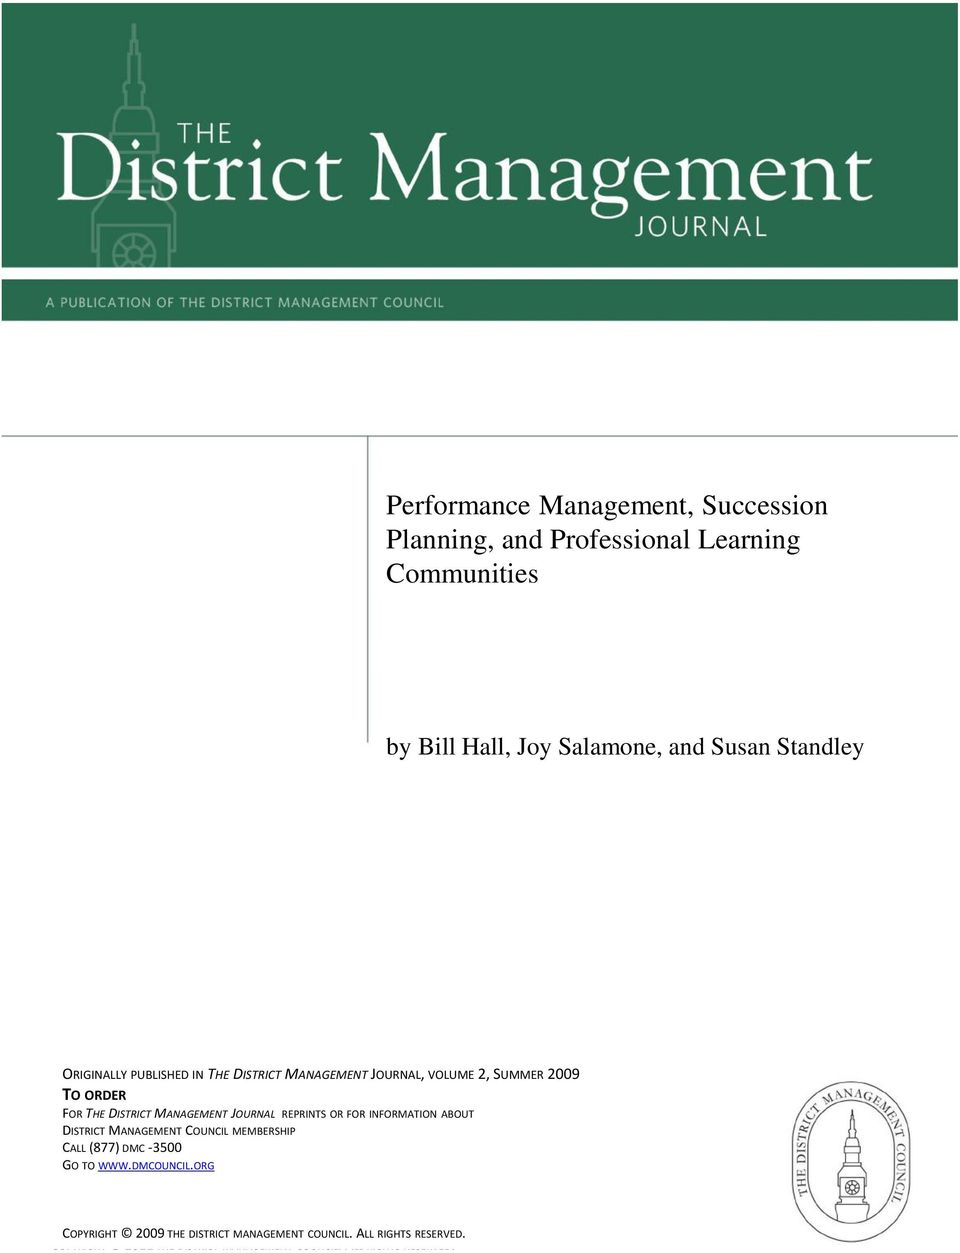 JOURNAL REPRINTS OR FOR INFORMATION ABOUT DISTRICT MANAGEMENT COUNCIL MEMBERSHIP CALL (877) DMC -3500 GO TO WWW.DMCOUNCIL.